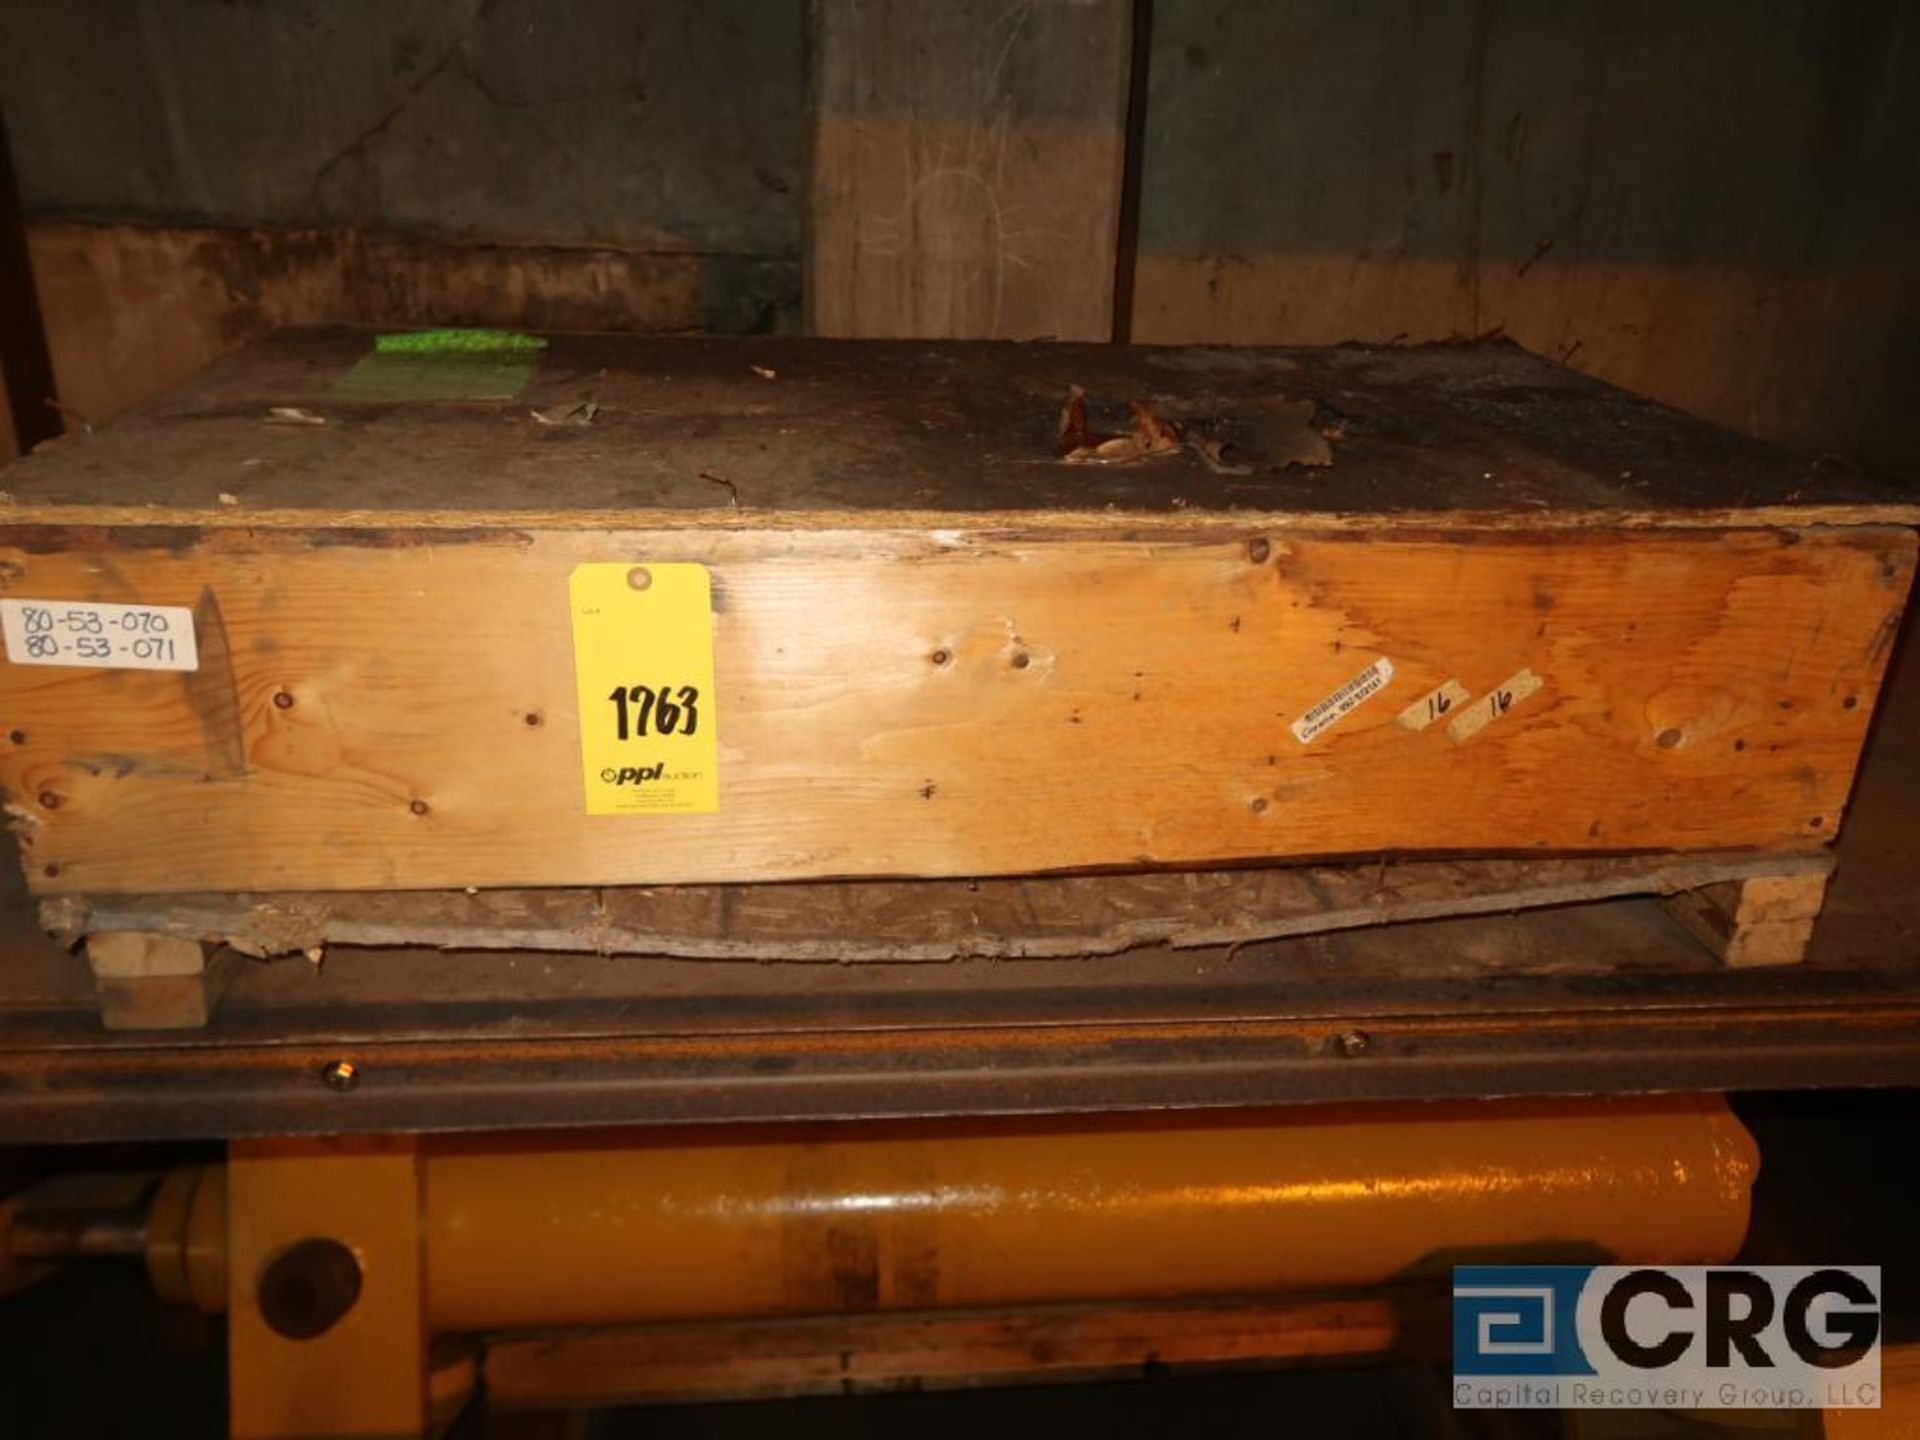 Lot of assorted parts including expansion joint, valves, fan blade, and rotors (Next Bay Cage Area) - Image 2 of 15